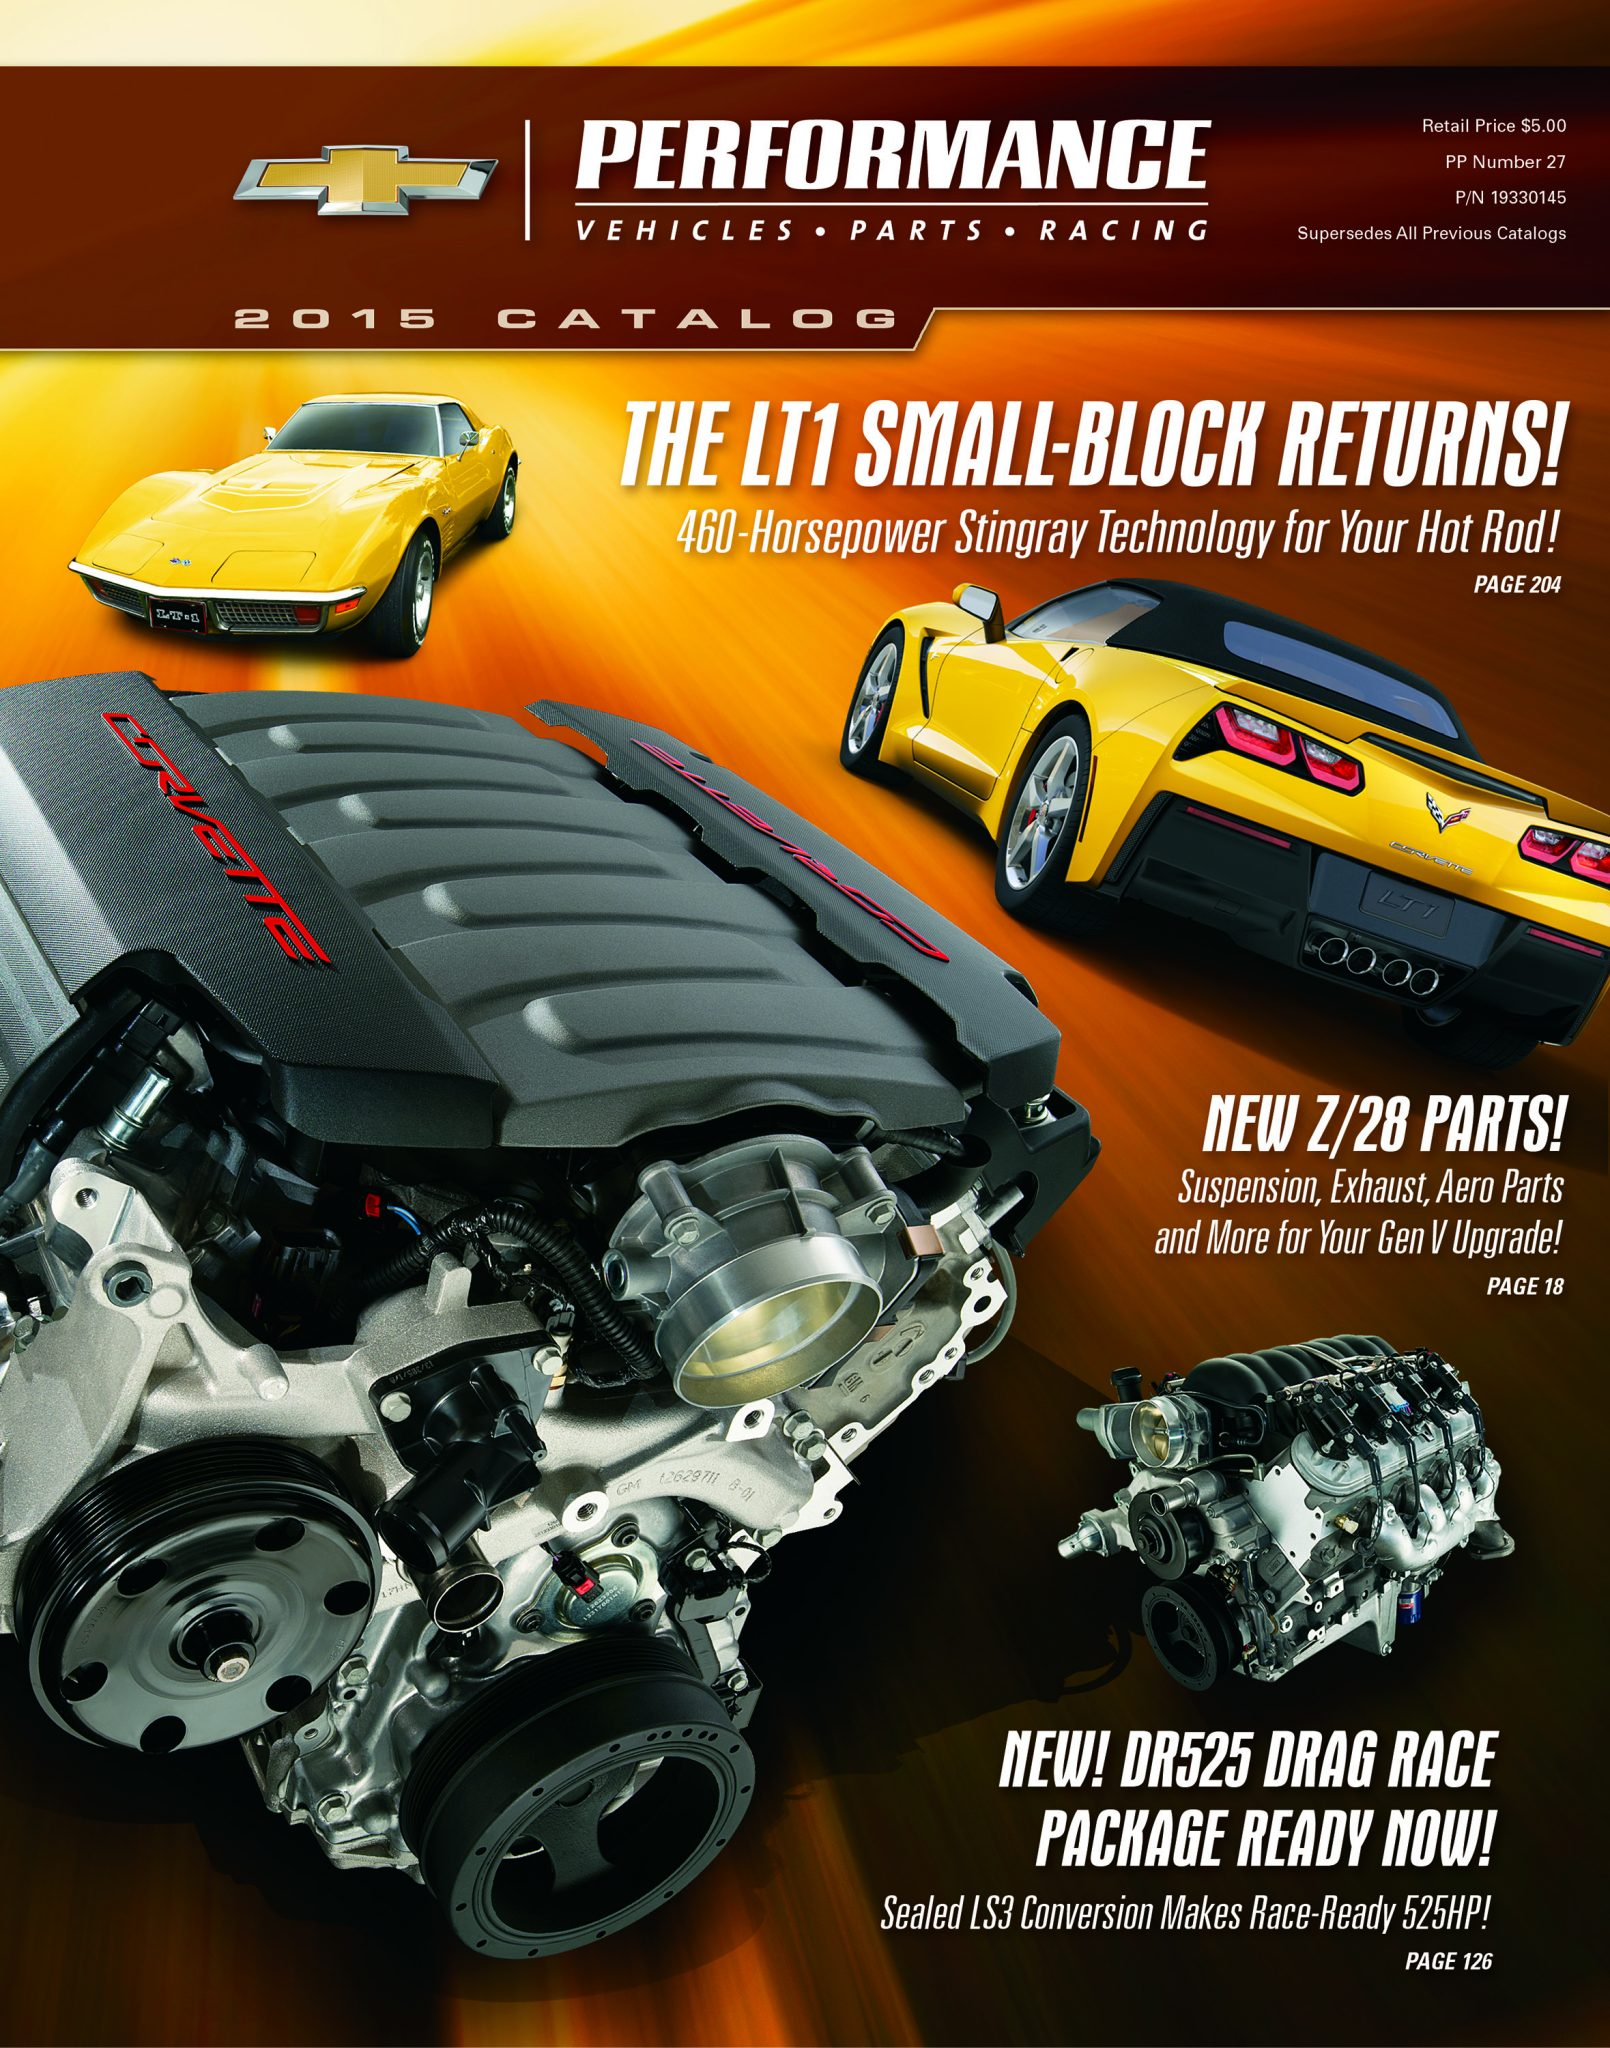 1969 Corvette Stingray >> Chevy Releases the 2015 Chevrolet Performance Catalog ...